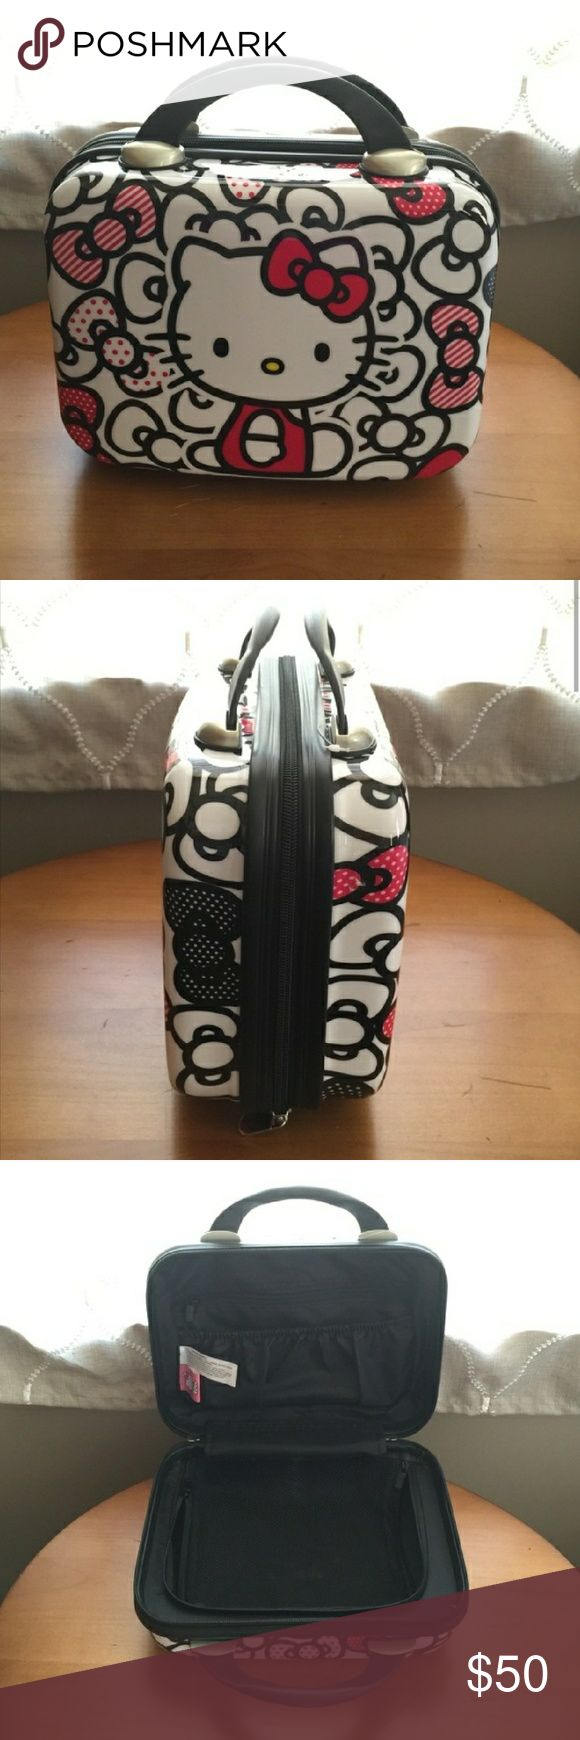 Hello Kitty hard travel make-up case Great way to travel and not worry about breaking your expensive make up.  In great condition.  Has mesh zip nets inside to hold your items in place. Hello Kitty Bags Cosmetic Bags & Cases